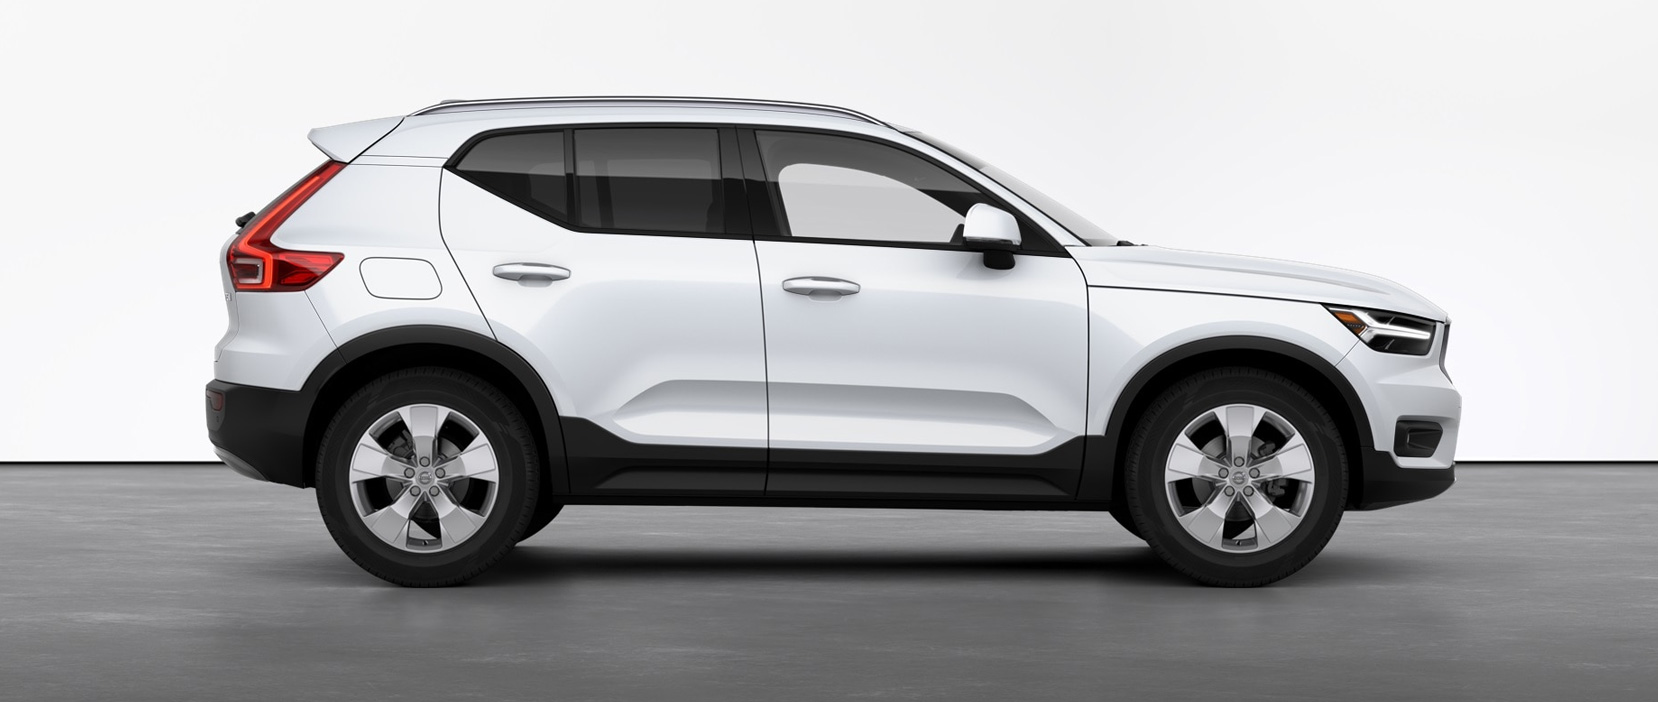 2021 Volvo XC40 T5 Momentum shown